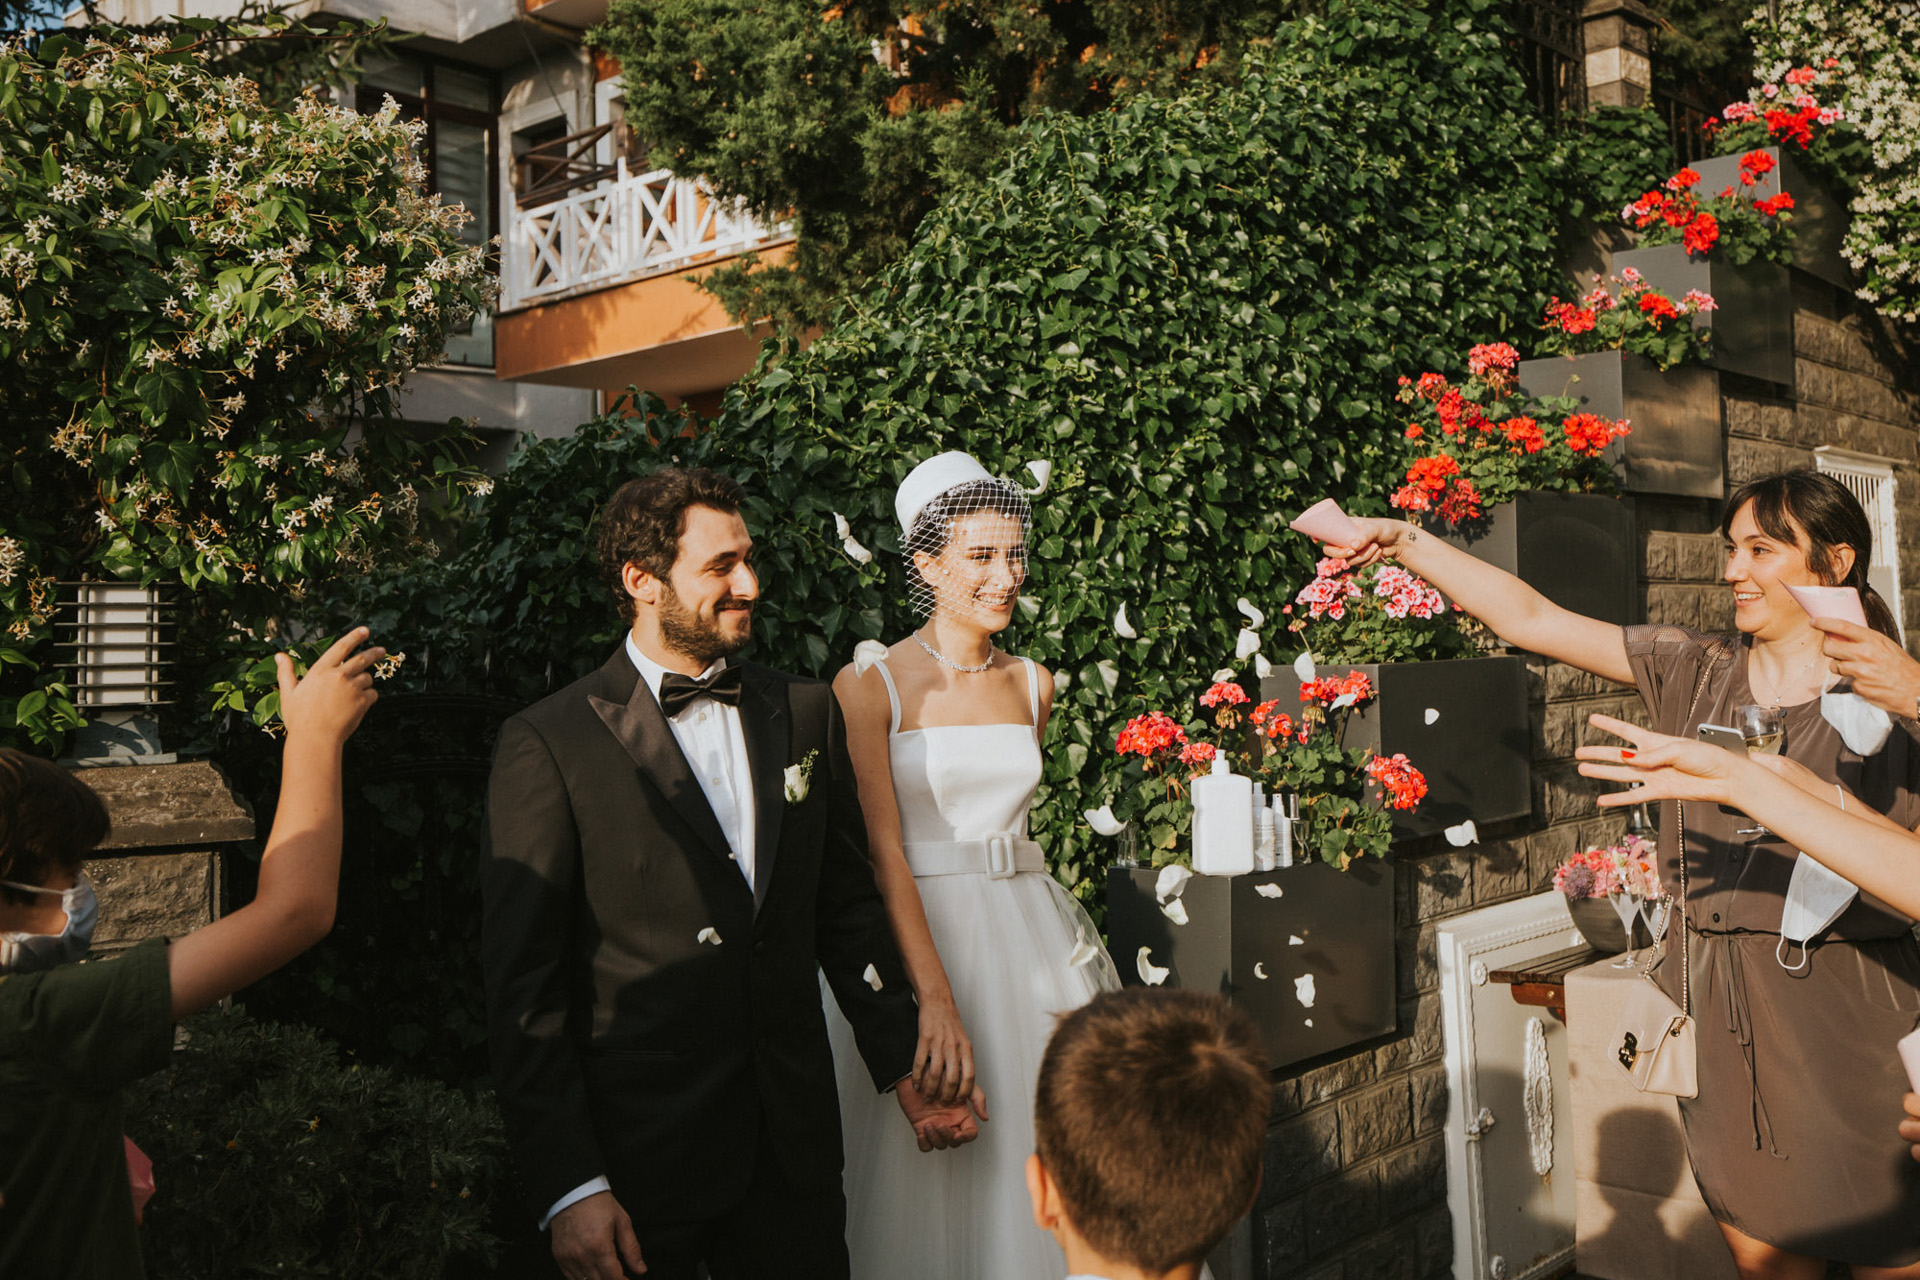 DIY Intimate Backyard Wedding Photos from Istanbul | the newlyweds leave the ceremony, holding hands and walking past the lush greenery